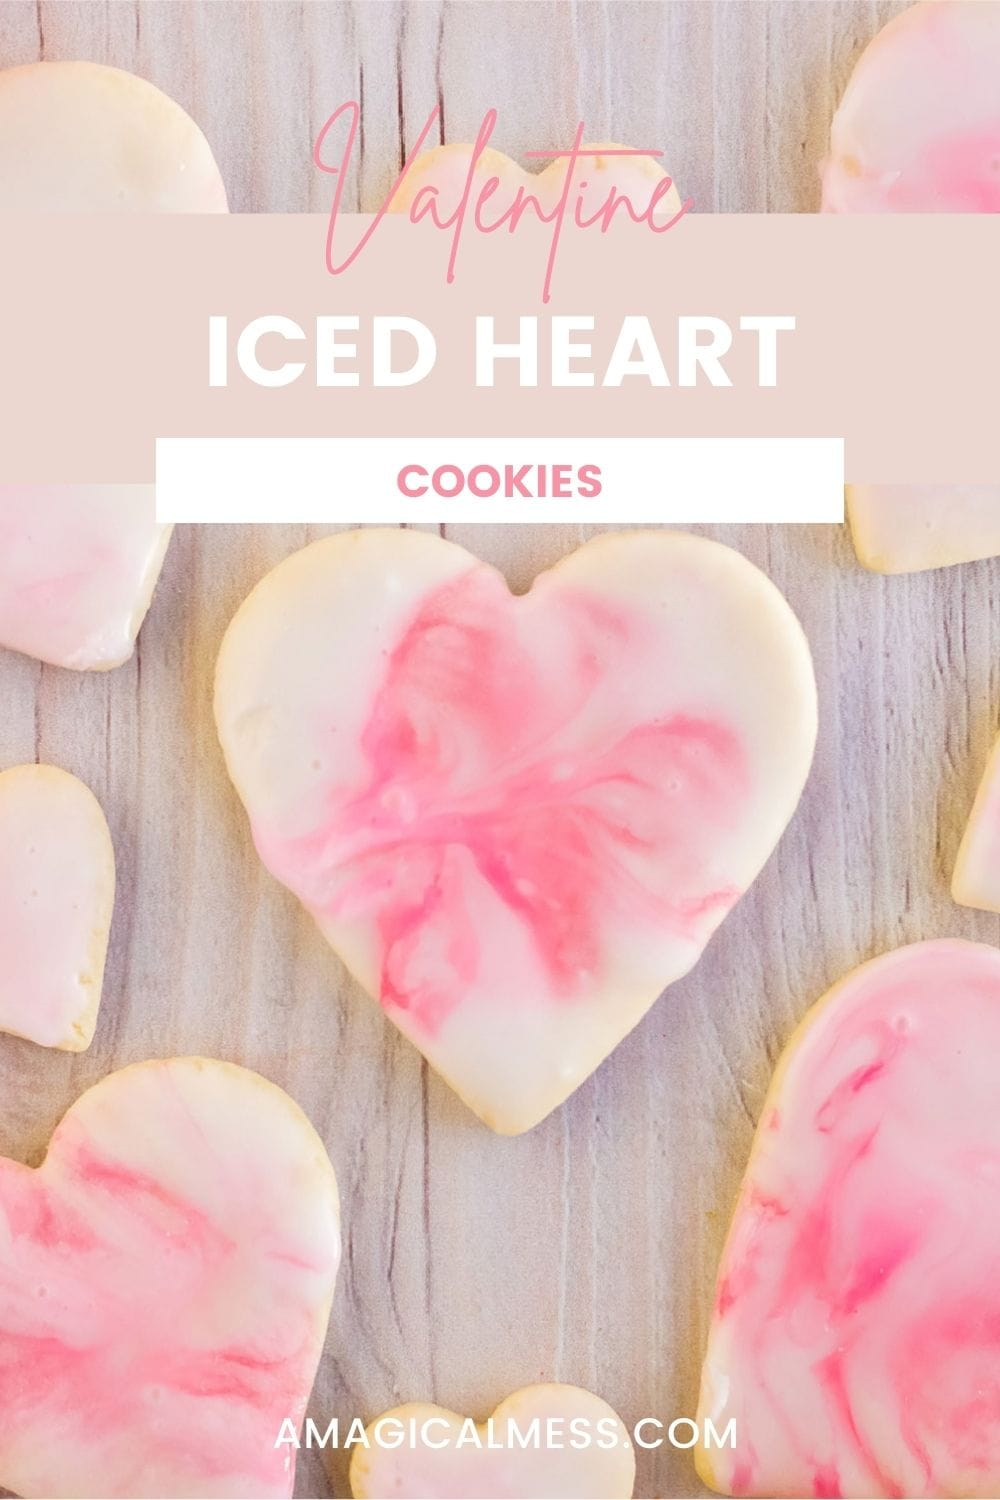 Heart shaped cookies with pink and white marble icing on a table.